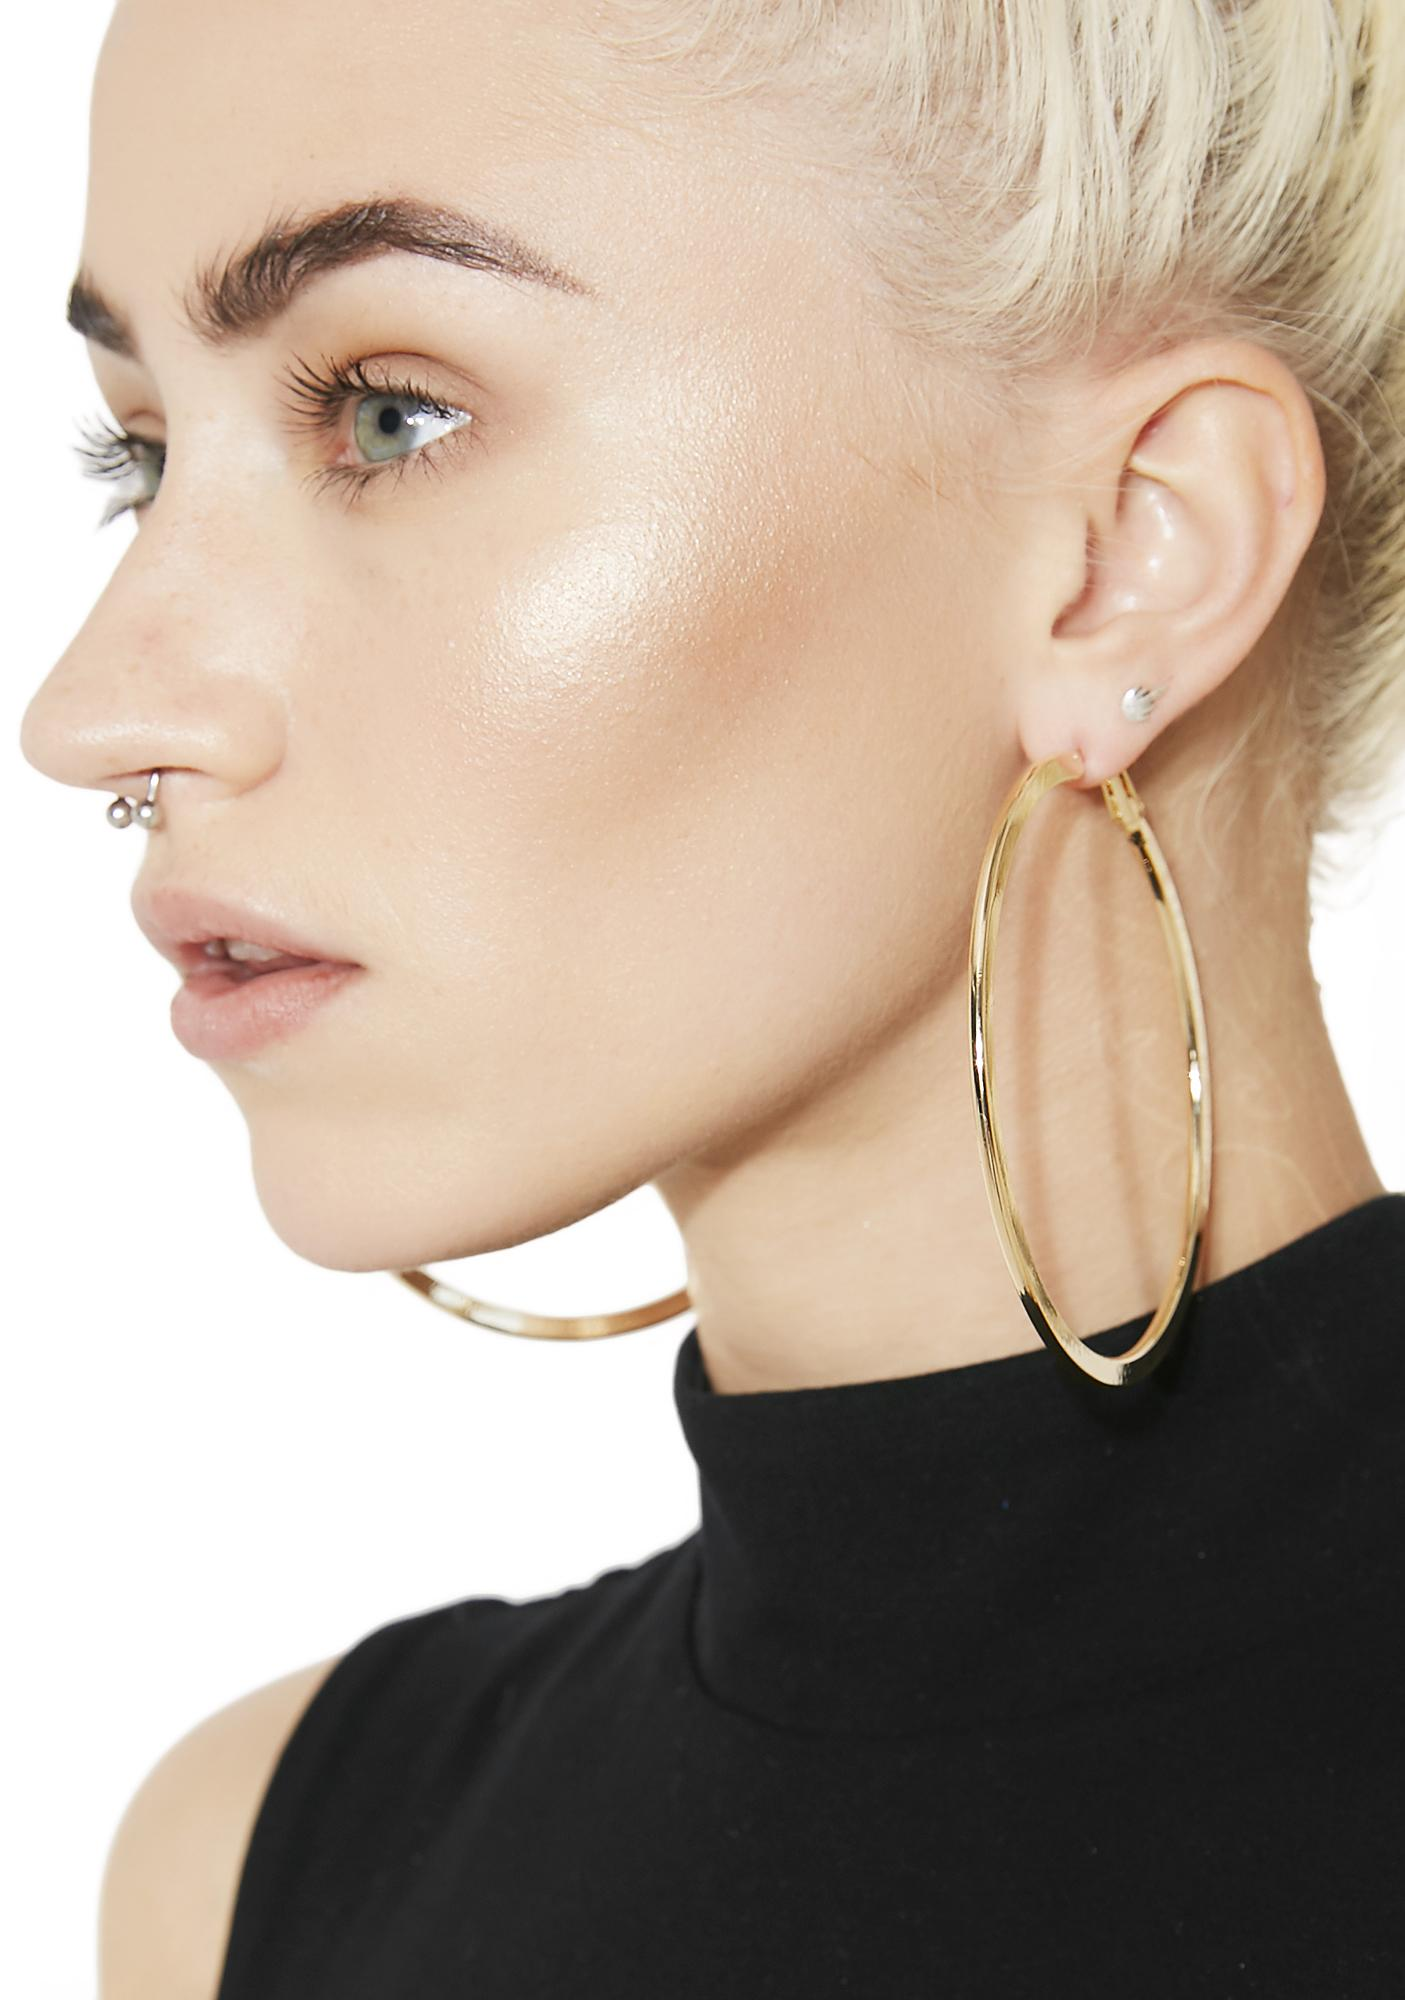 on gold happy model geoart as products hoop kavantandsharart large earrings face olivia round seen culpo